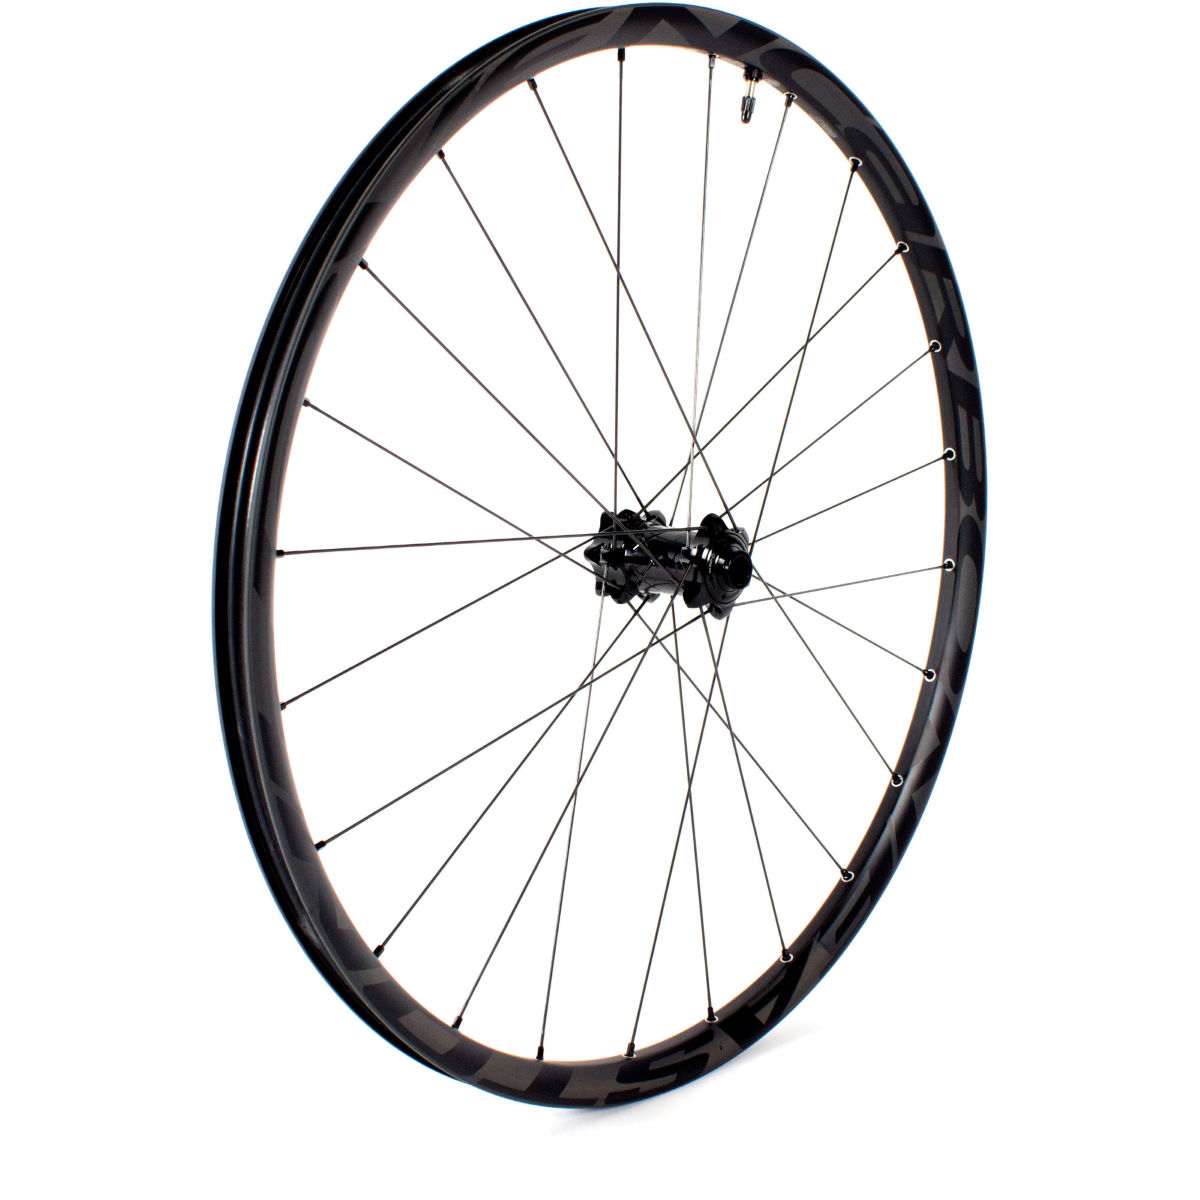 Roue avant VTT Easton Haven 27,5 pouces (carbone) - 15mm Front Noir